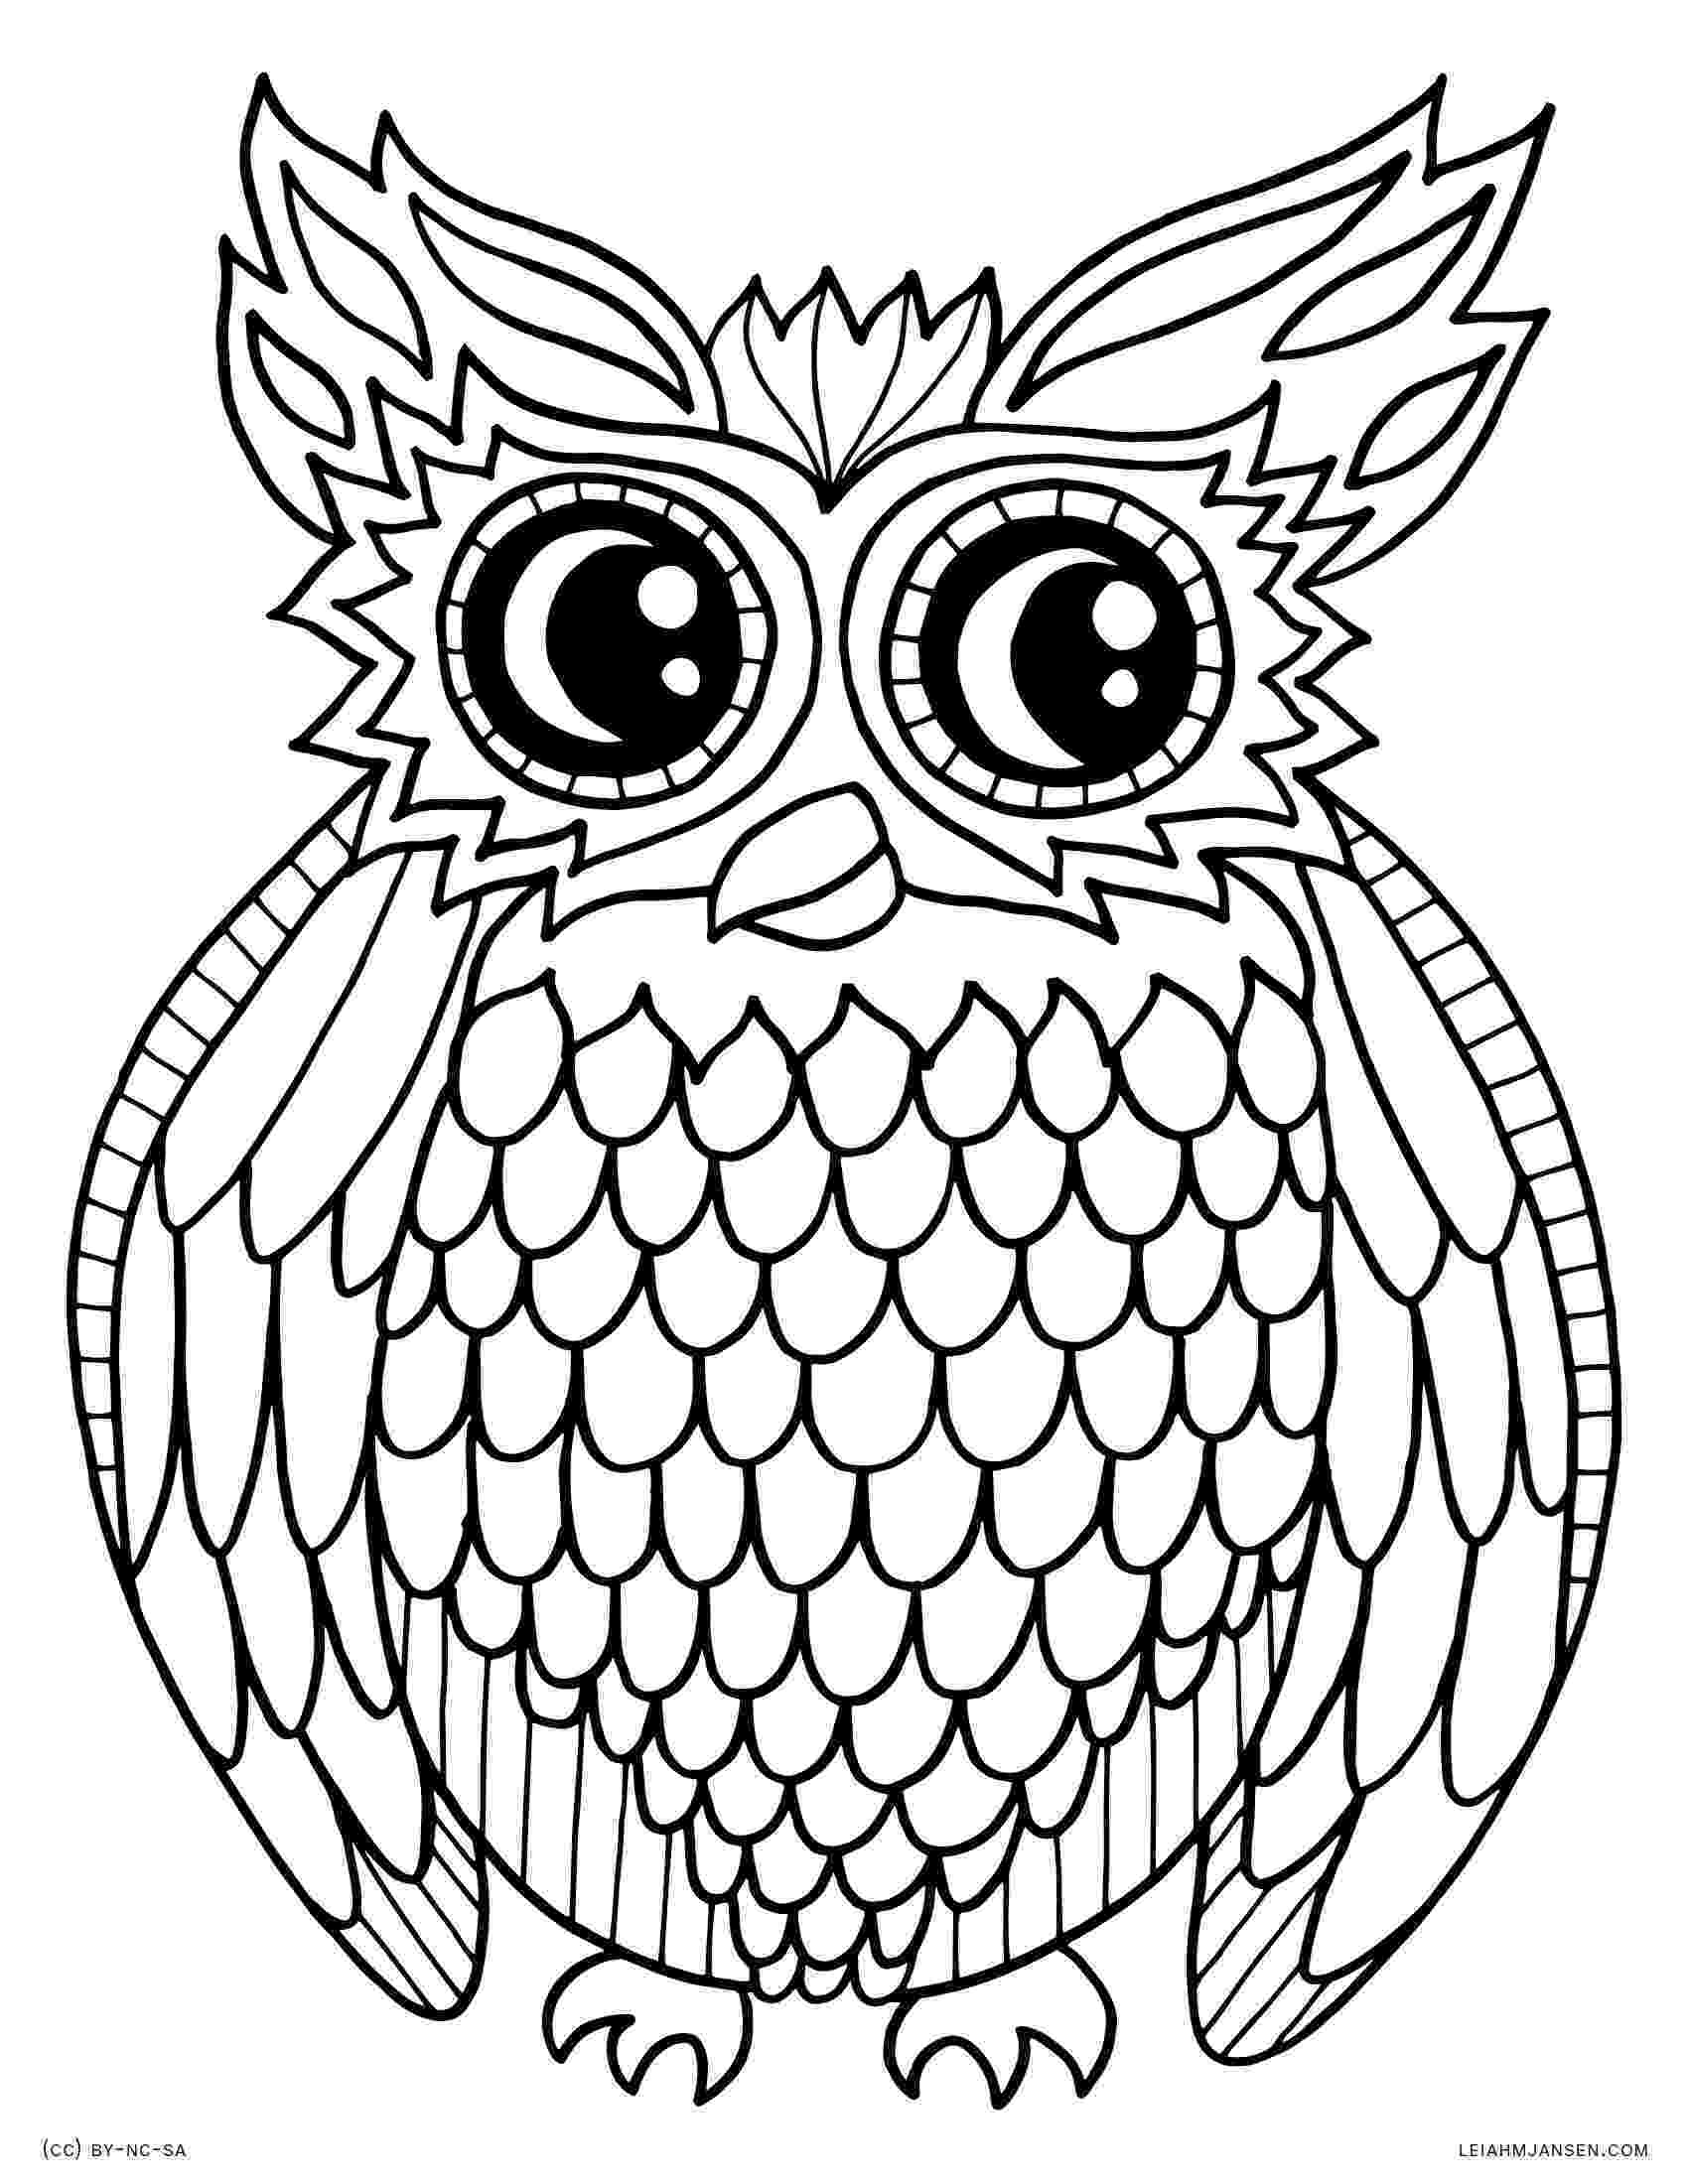 owl coloring pages for kids embroidery on pinterest embroidery patterns sunbonnet kids coloring pages owl for